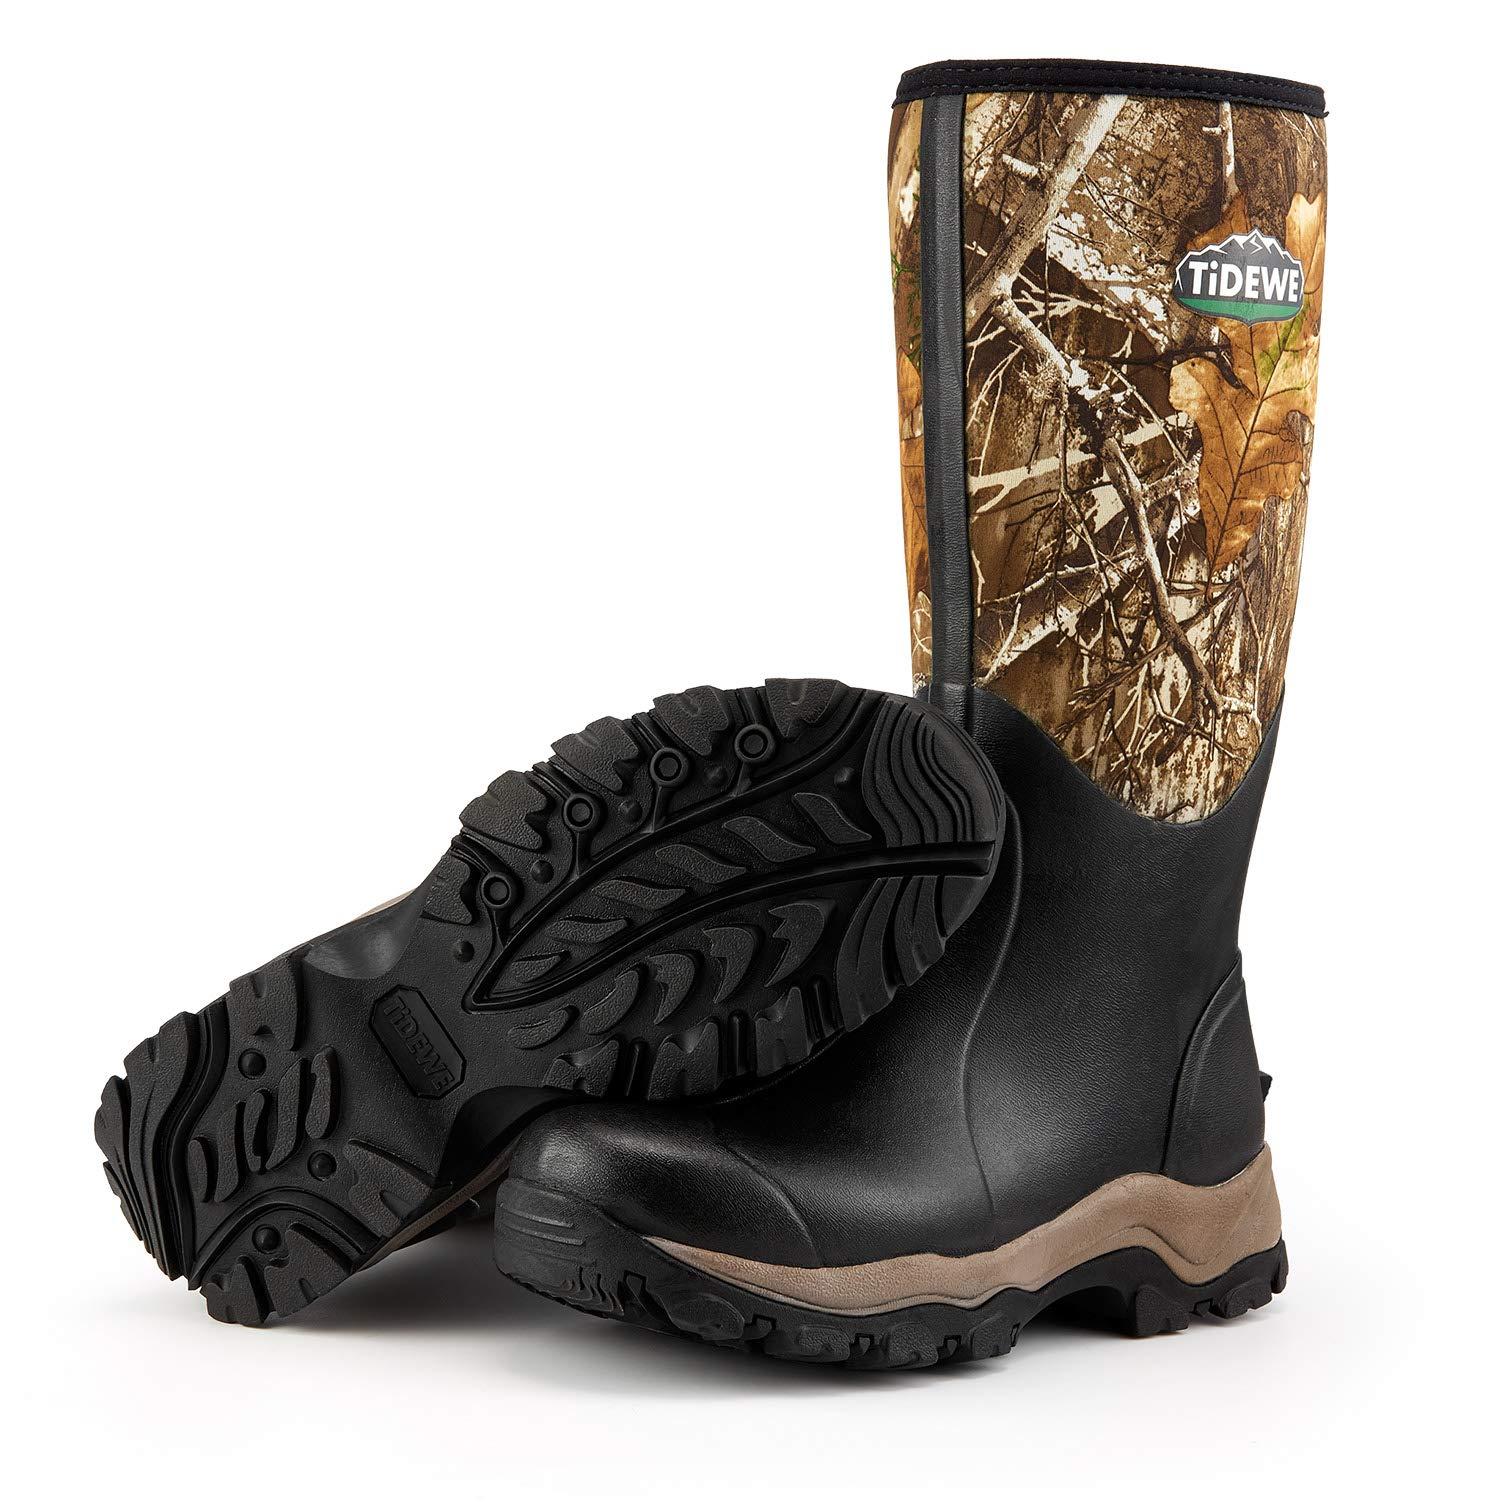 TideWe Hunting Boot for Men, Insulated Waterproof Durable 16'' Men's Hunting Boot, 6mm Neoprene and Rubber Outdoor Boot Realtree Edge Camo US Size 10 by TideWe